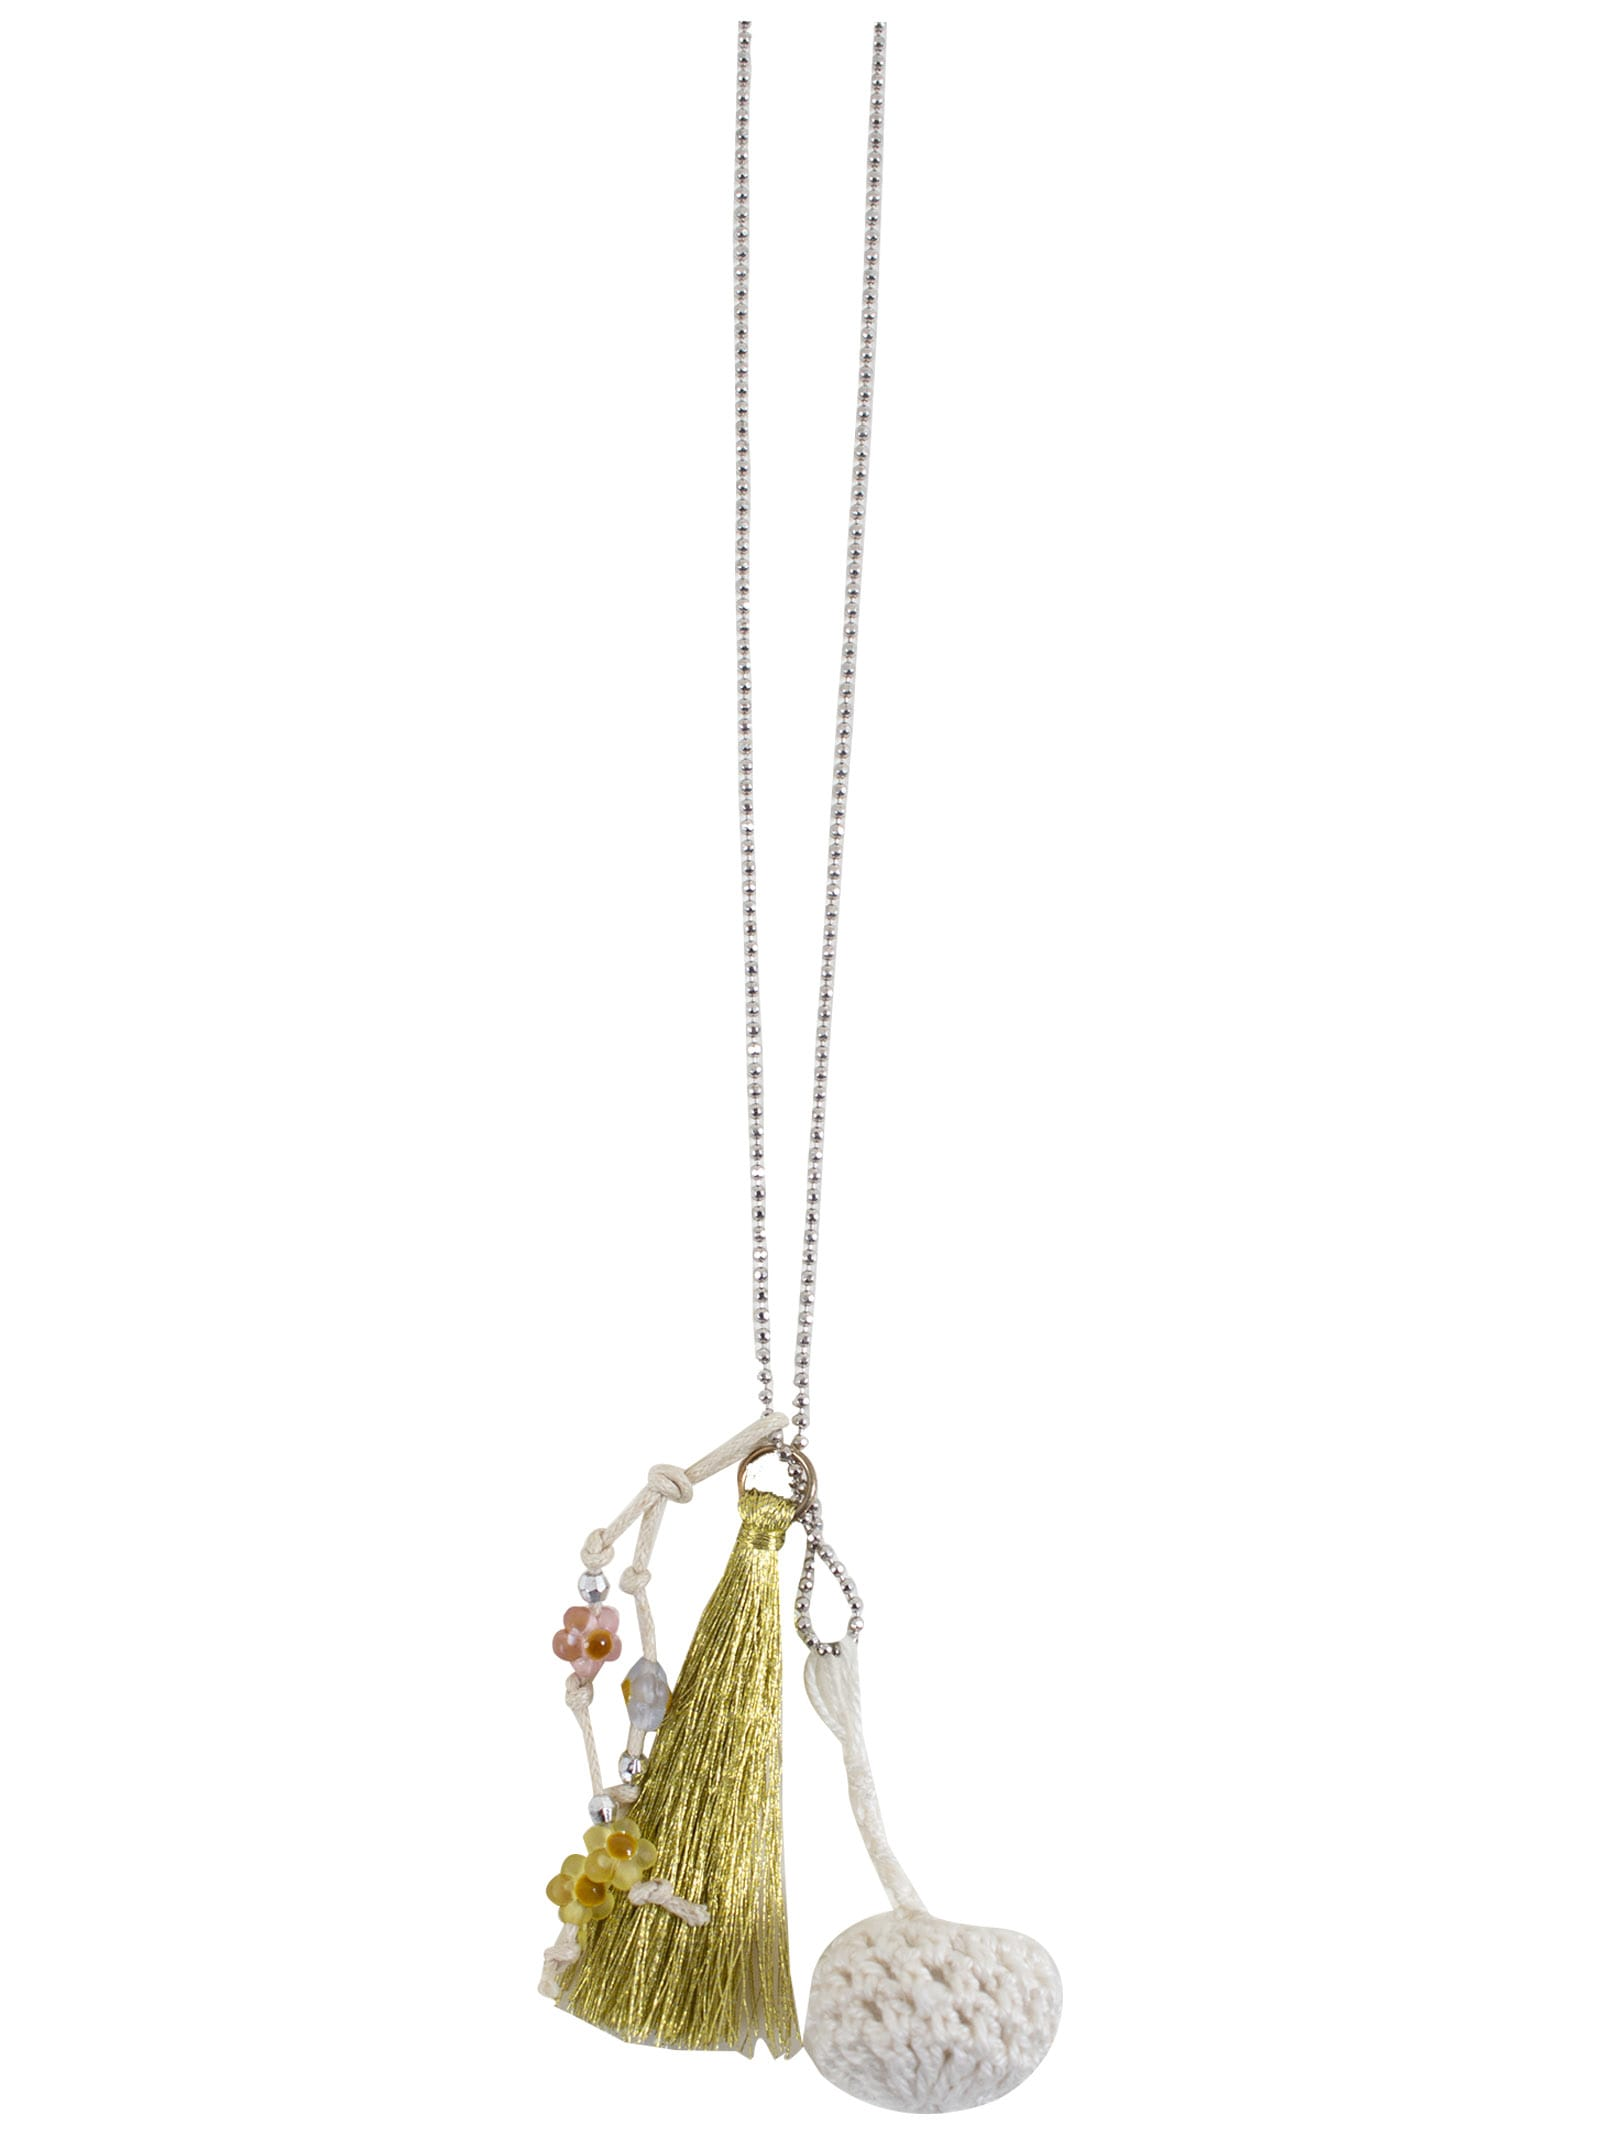 Caffe dOrzo Necklace With Tassels